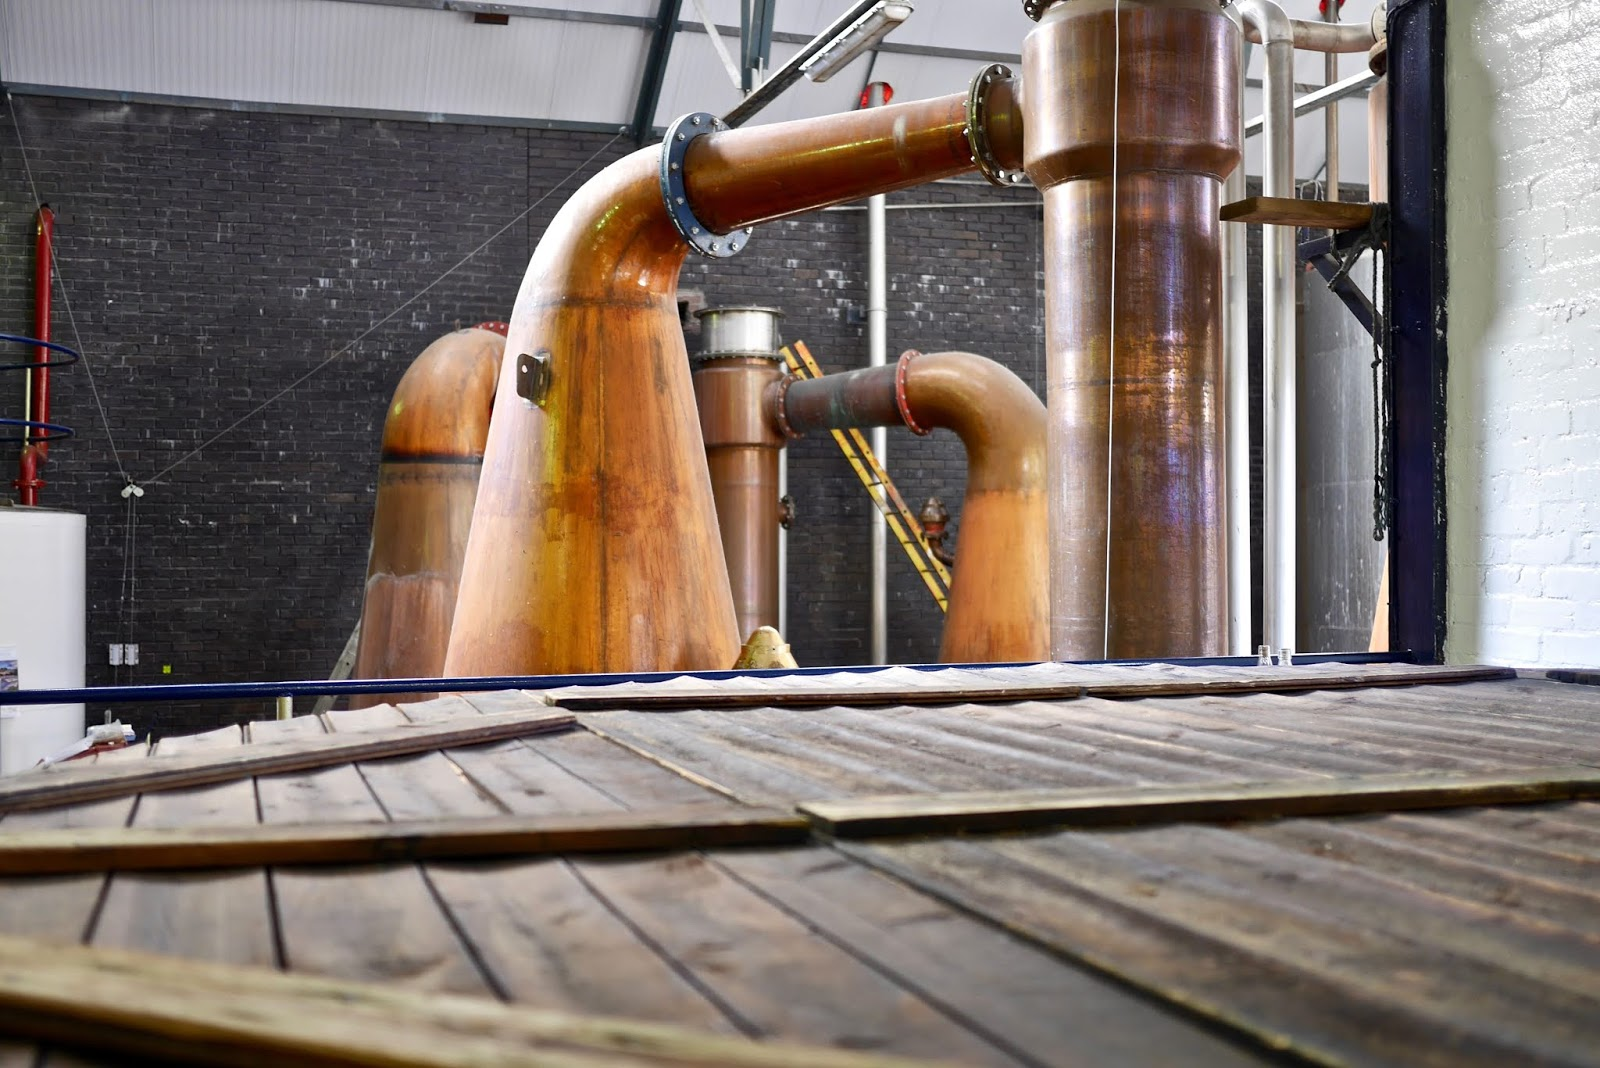 Tullibardine whisky distillery tour including stills, wash, wart and tasting rooms